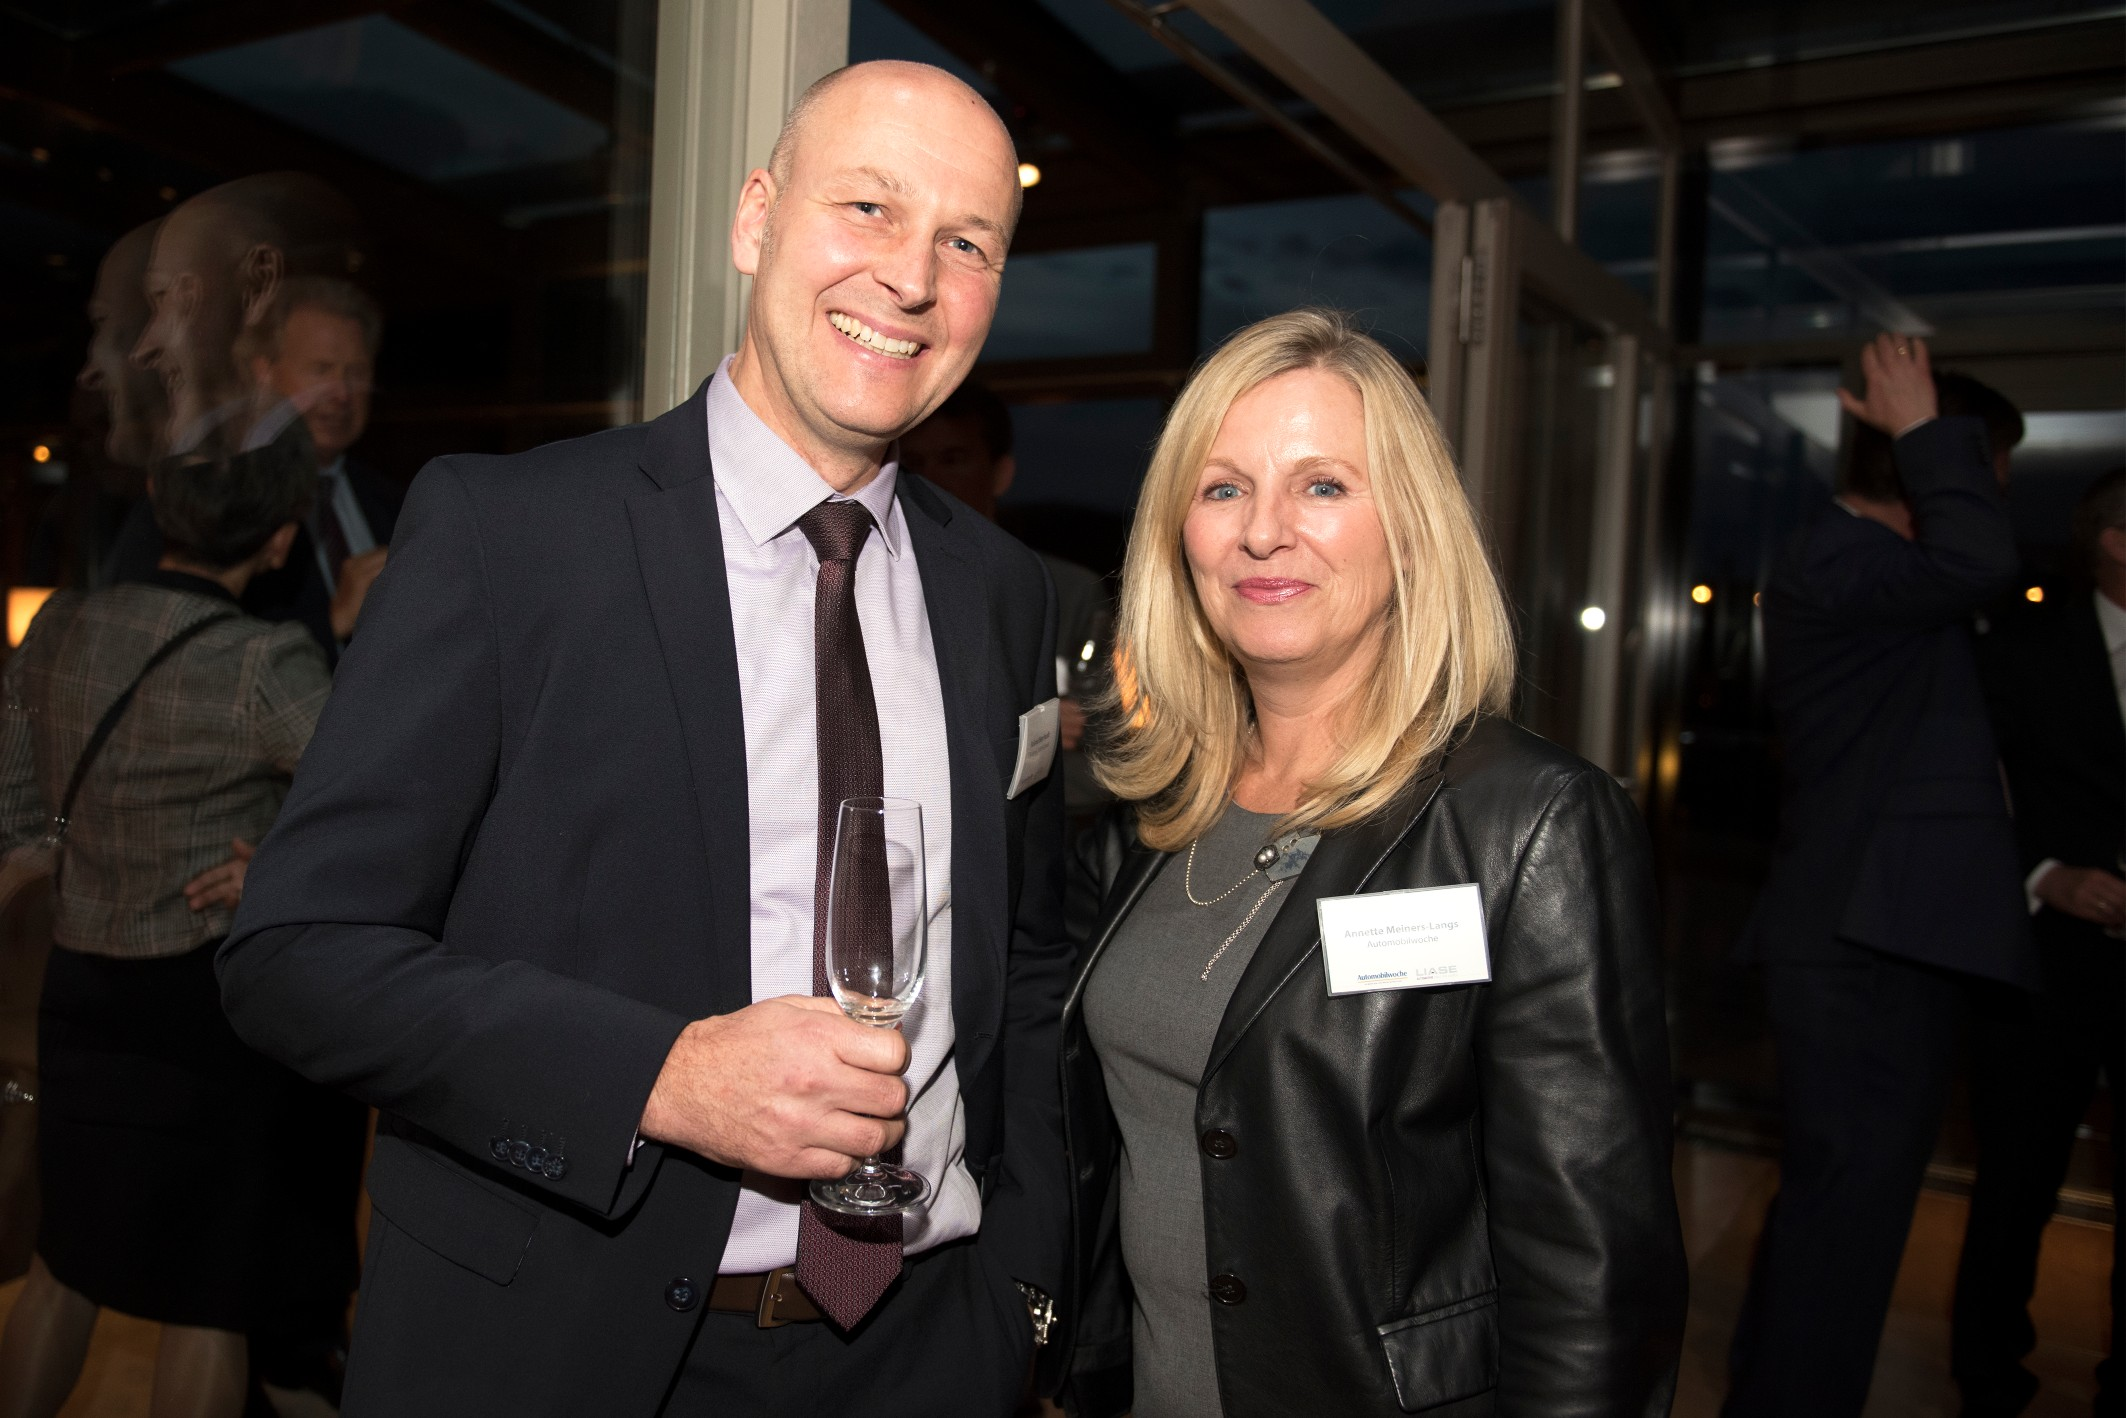 Roland Bernhardt (left), Head of Global Accounts at Volkswagen, and Annette Meiners-Langs (right), Sales Manager at Automobilwoche.